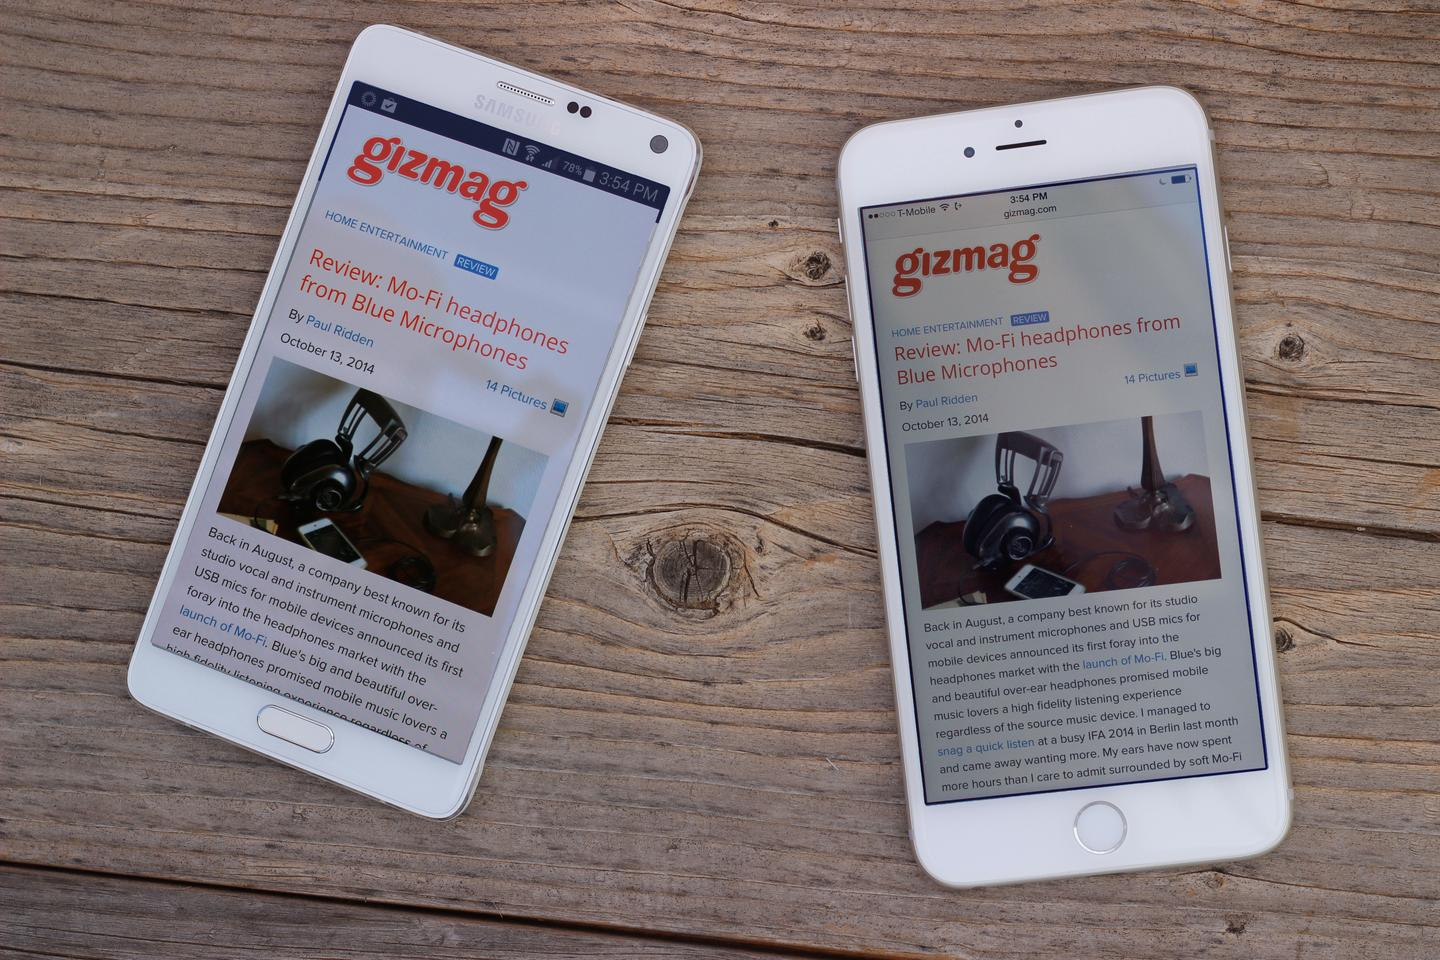 Samsung Galaxy Note 4 (left) and the iPhone 6 Plus (Photo: Will Shanklin/Gizmag.com)